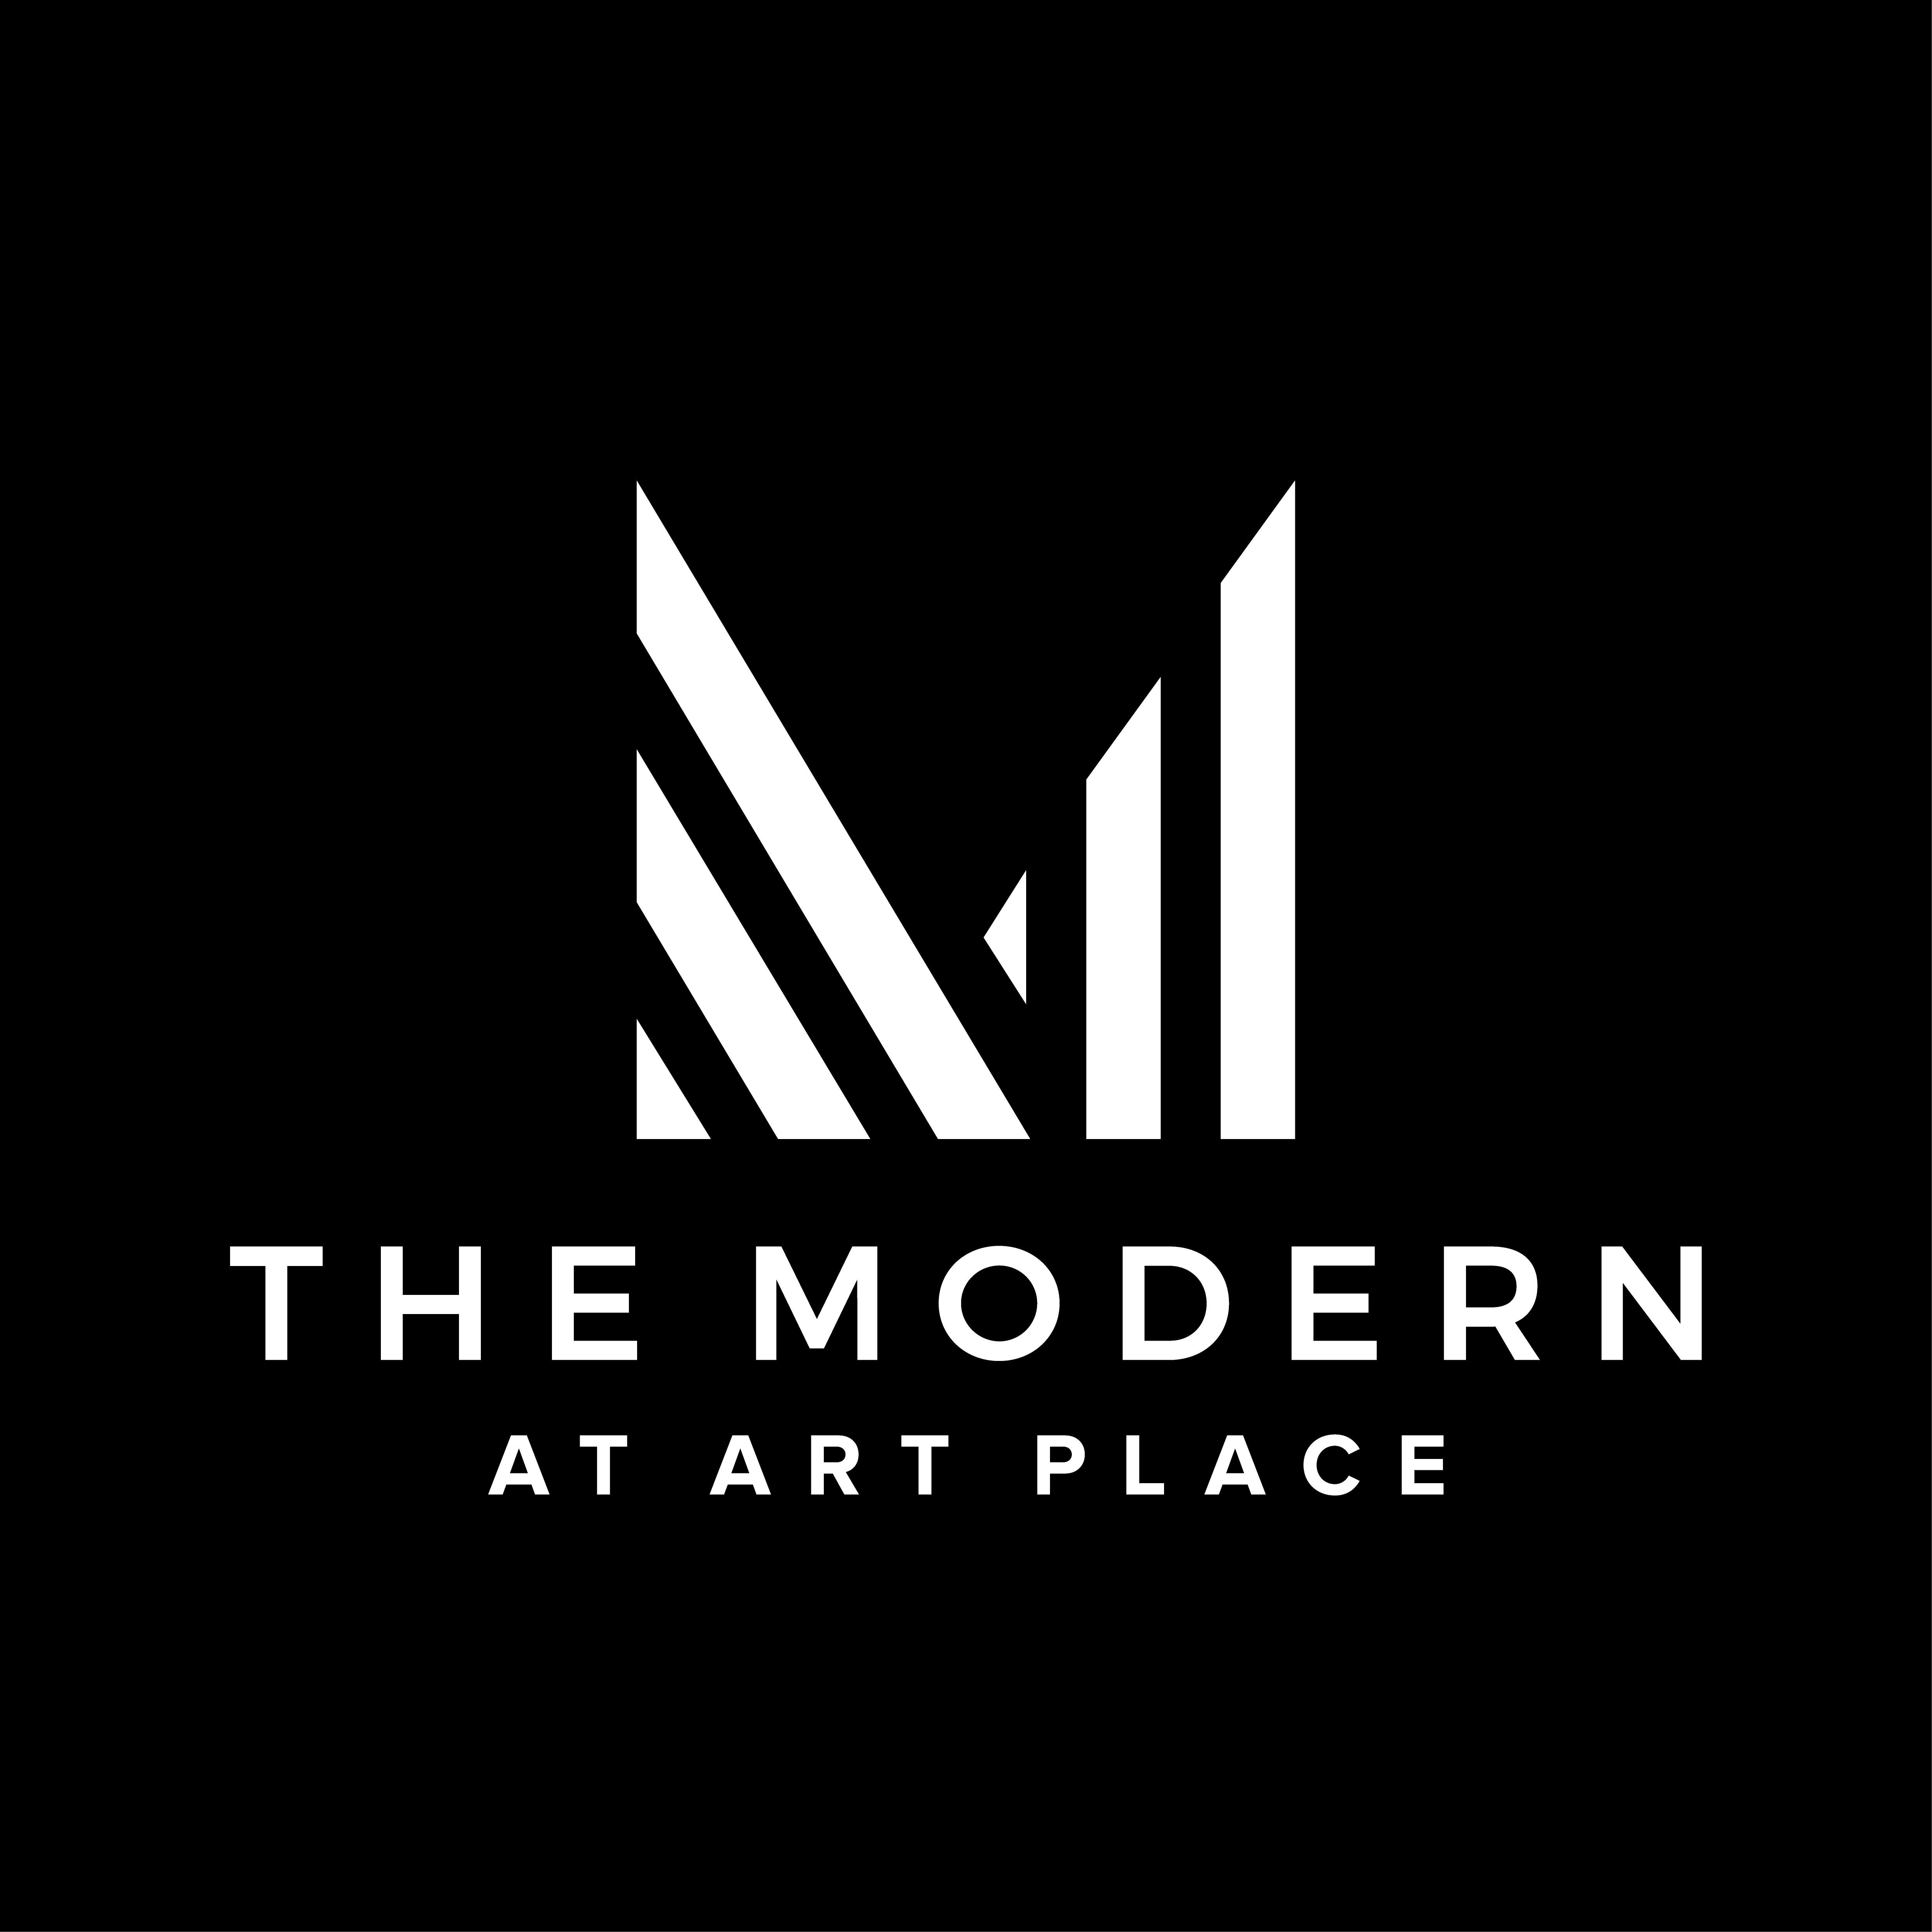 The Modern at Art Place image 29